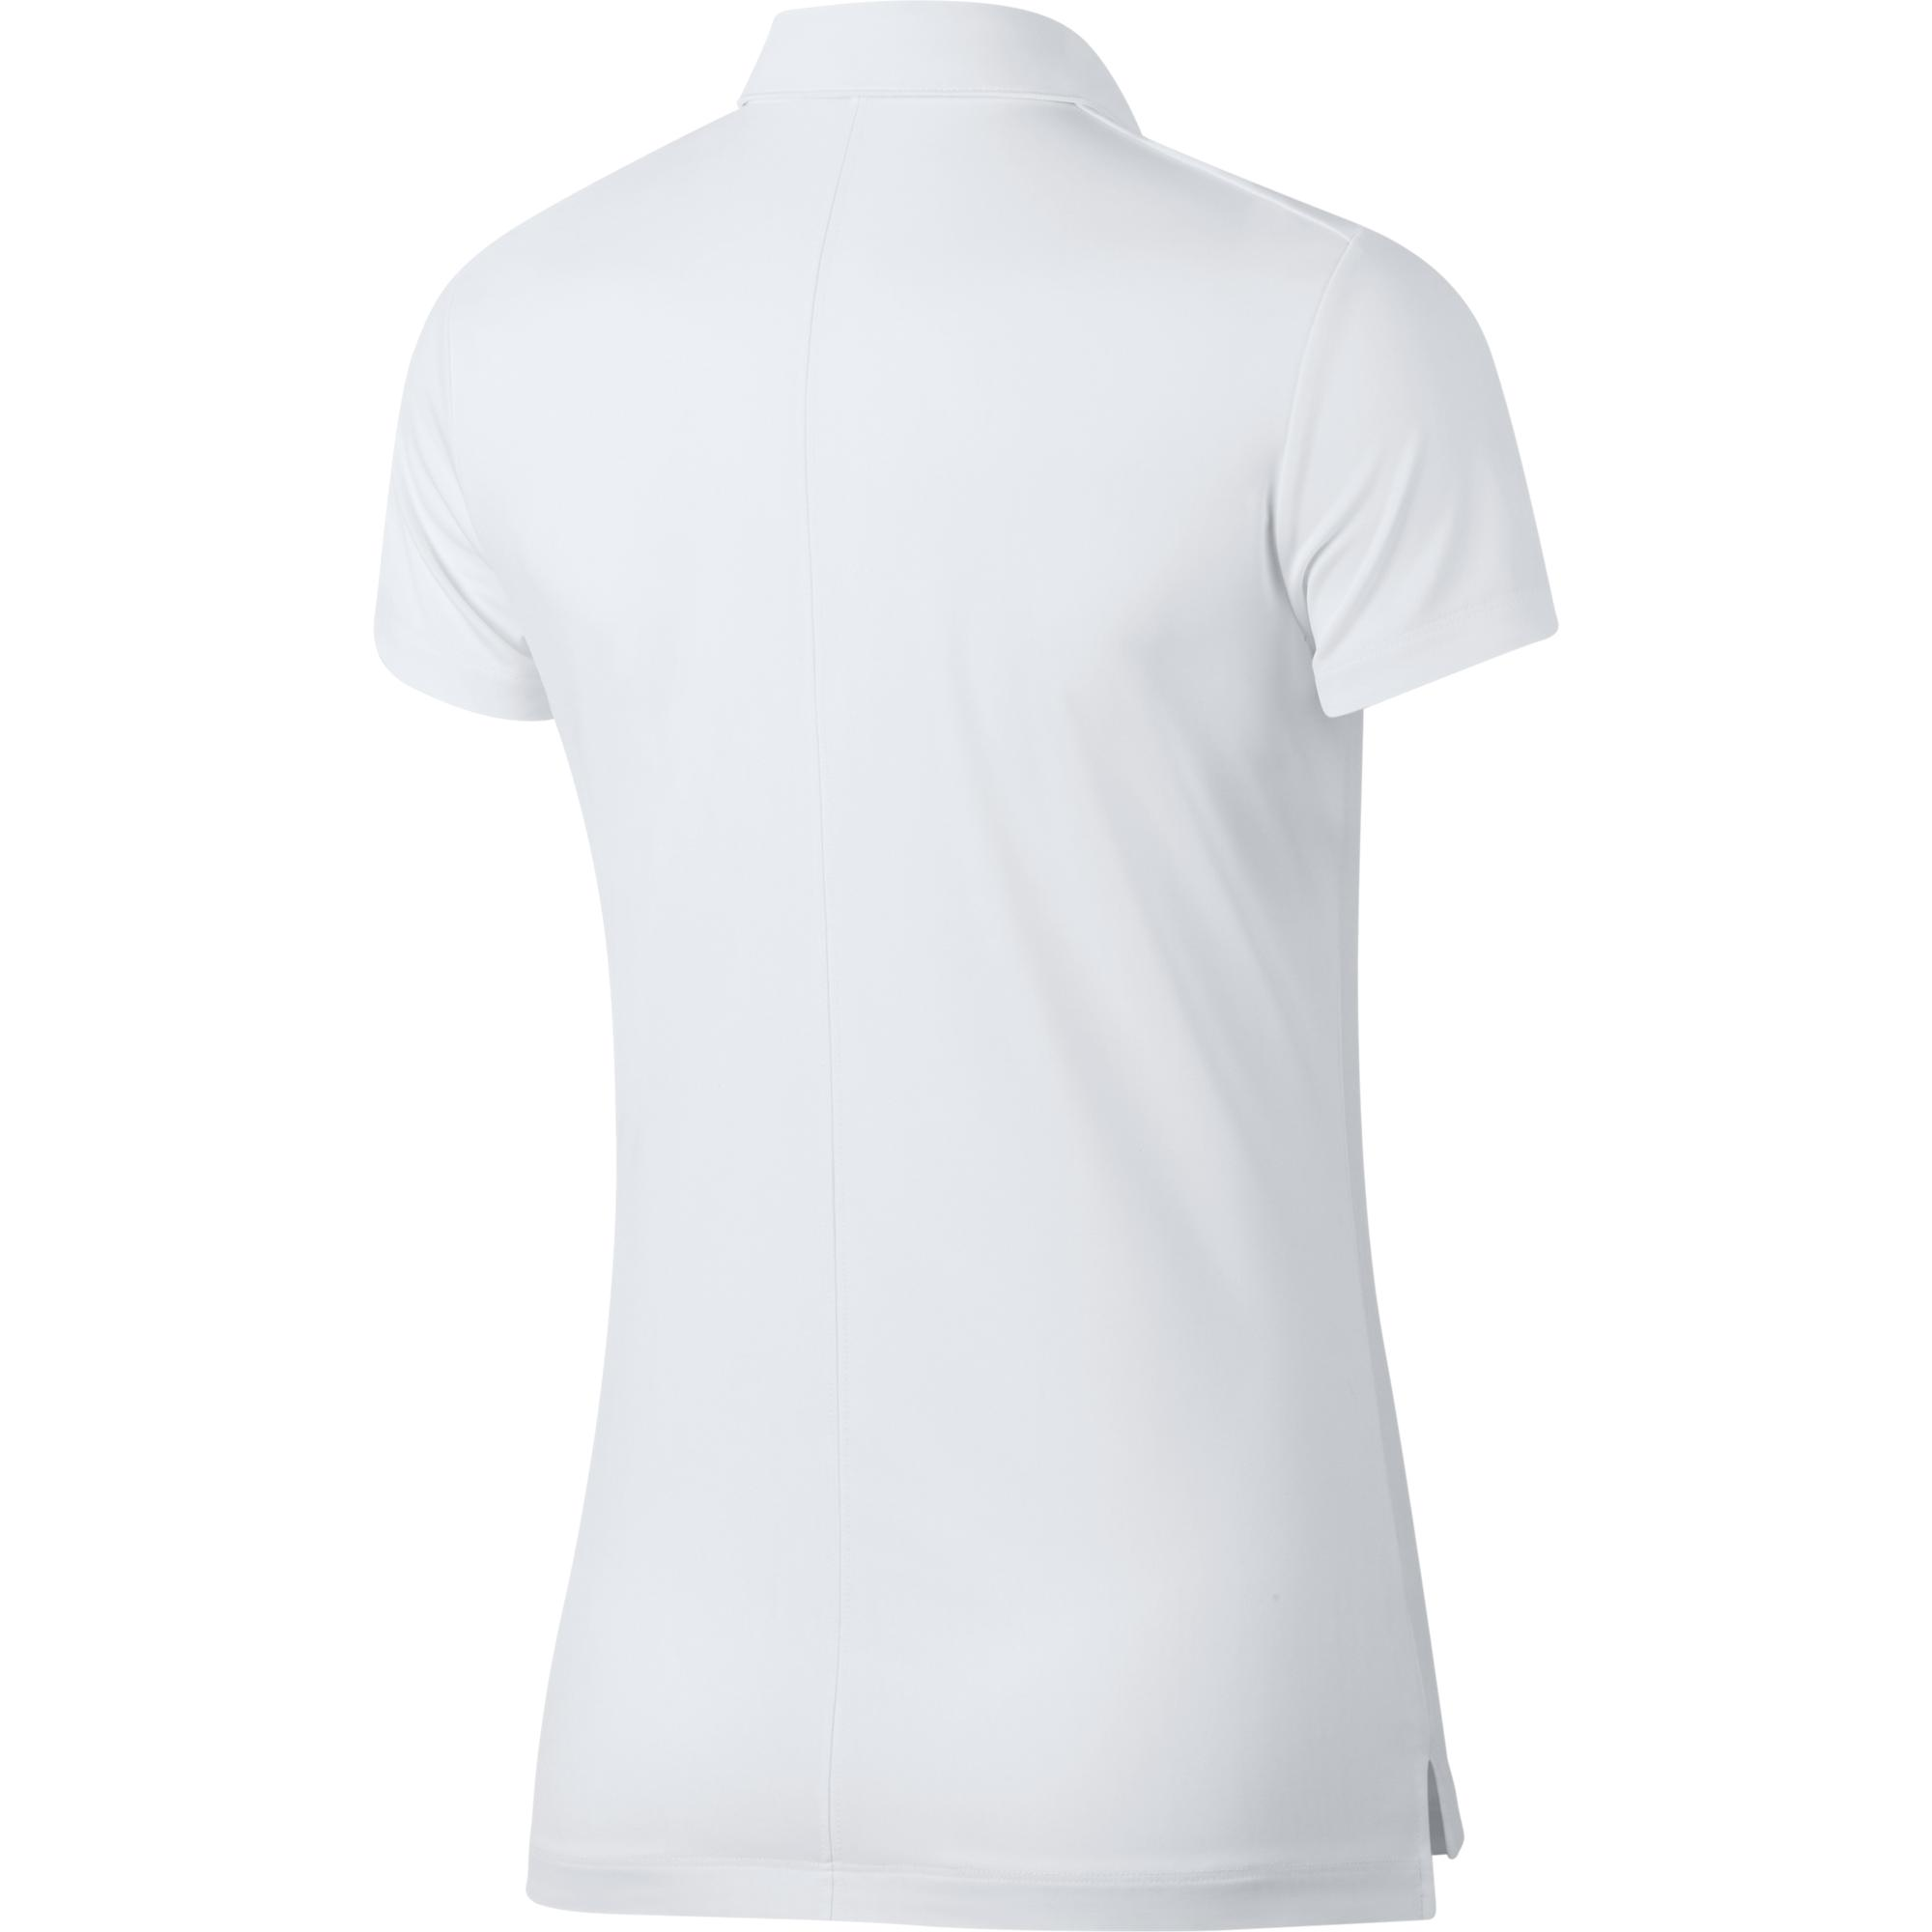 Women's Dri-FIT Short Sleeve Polo